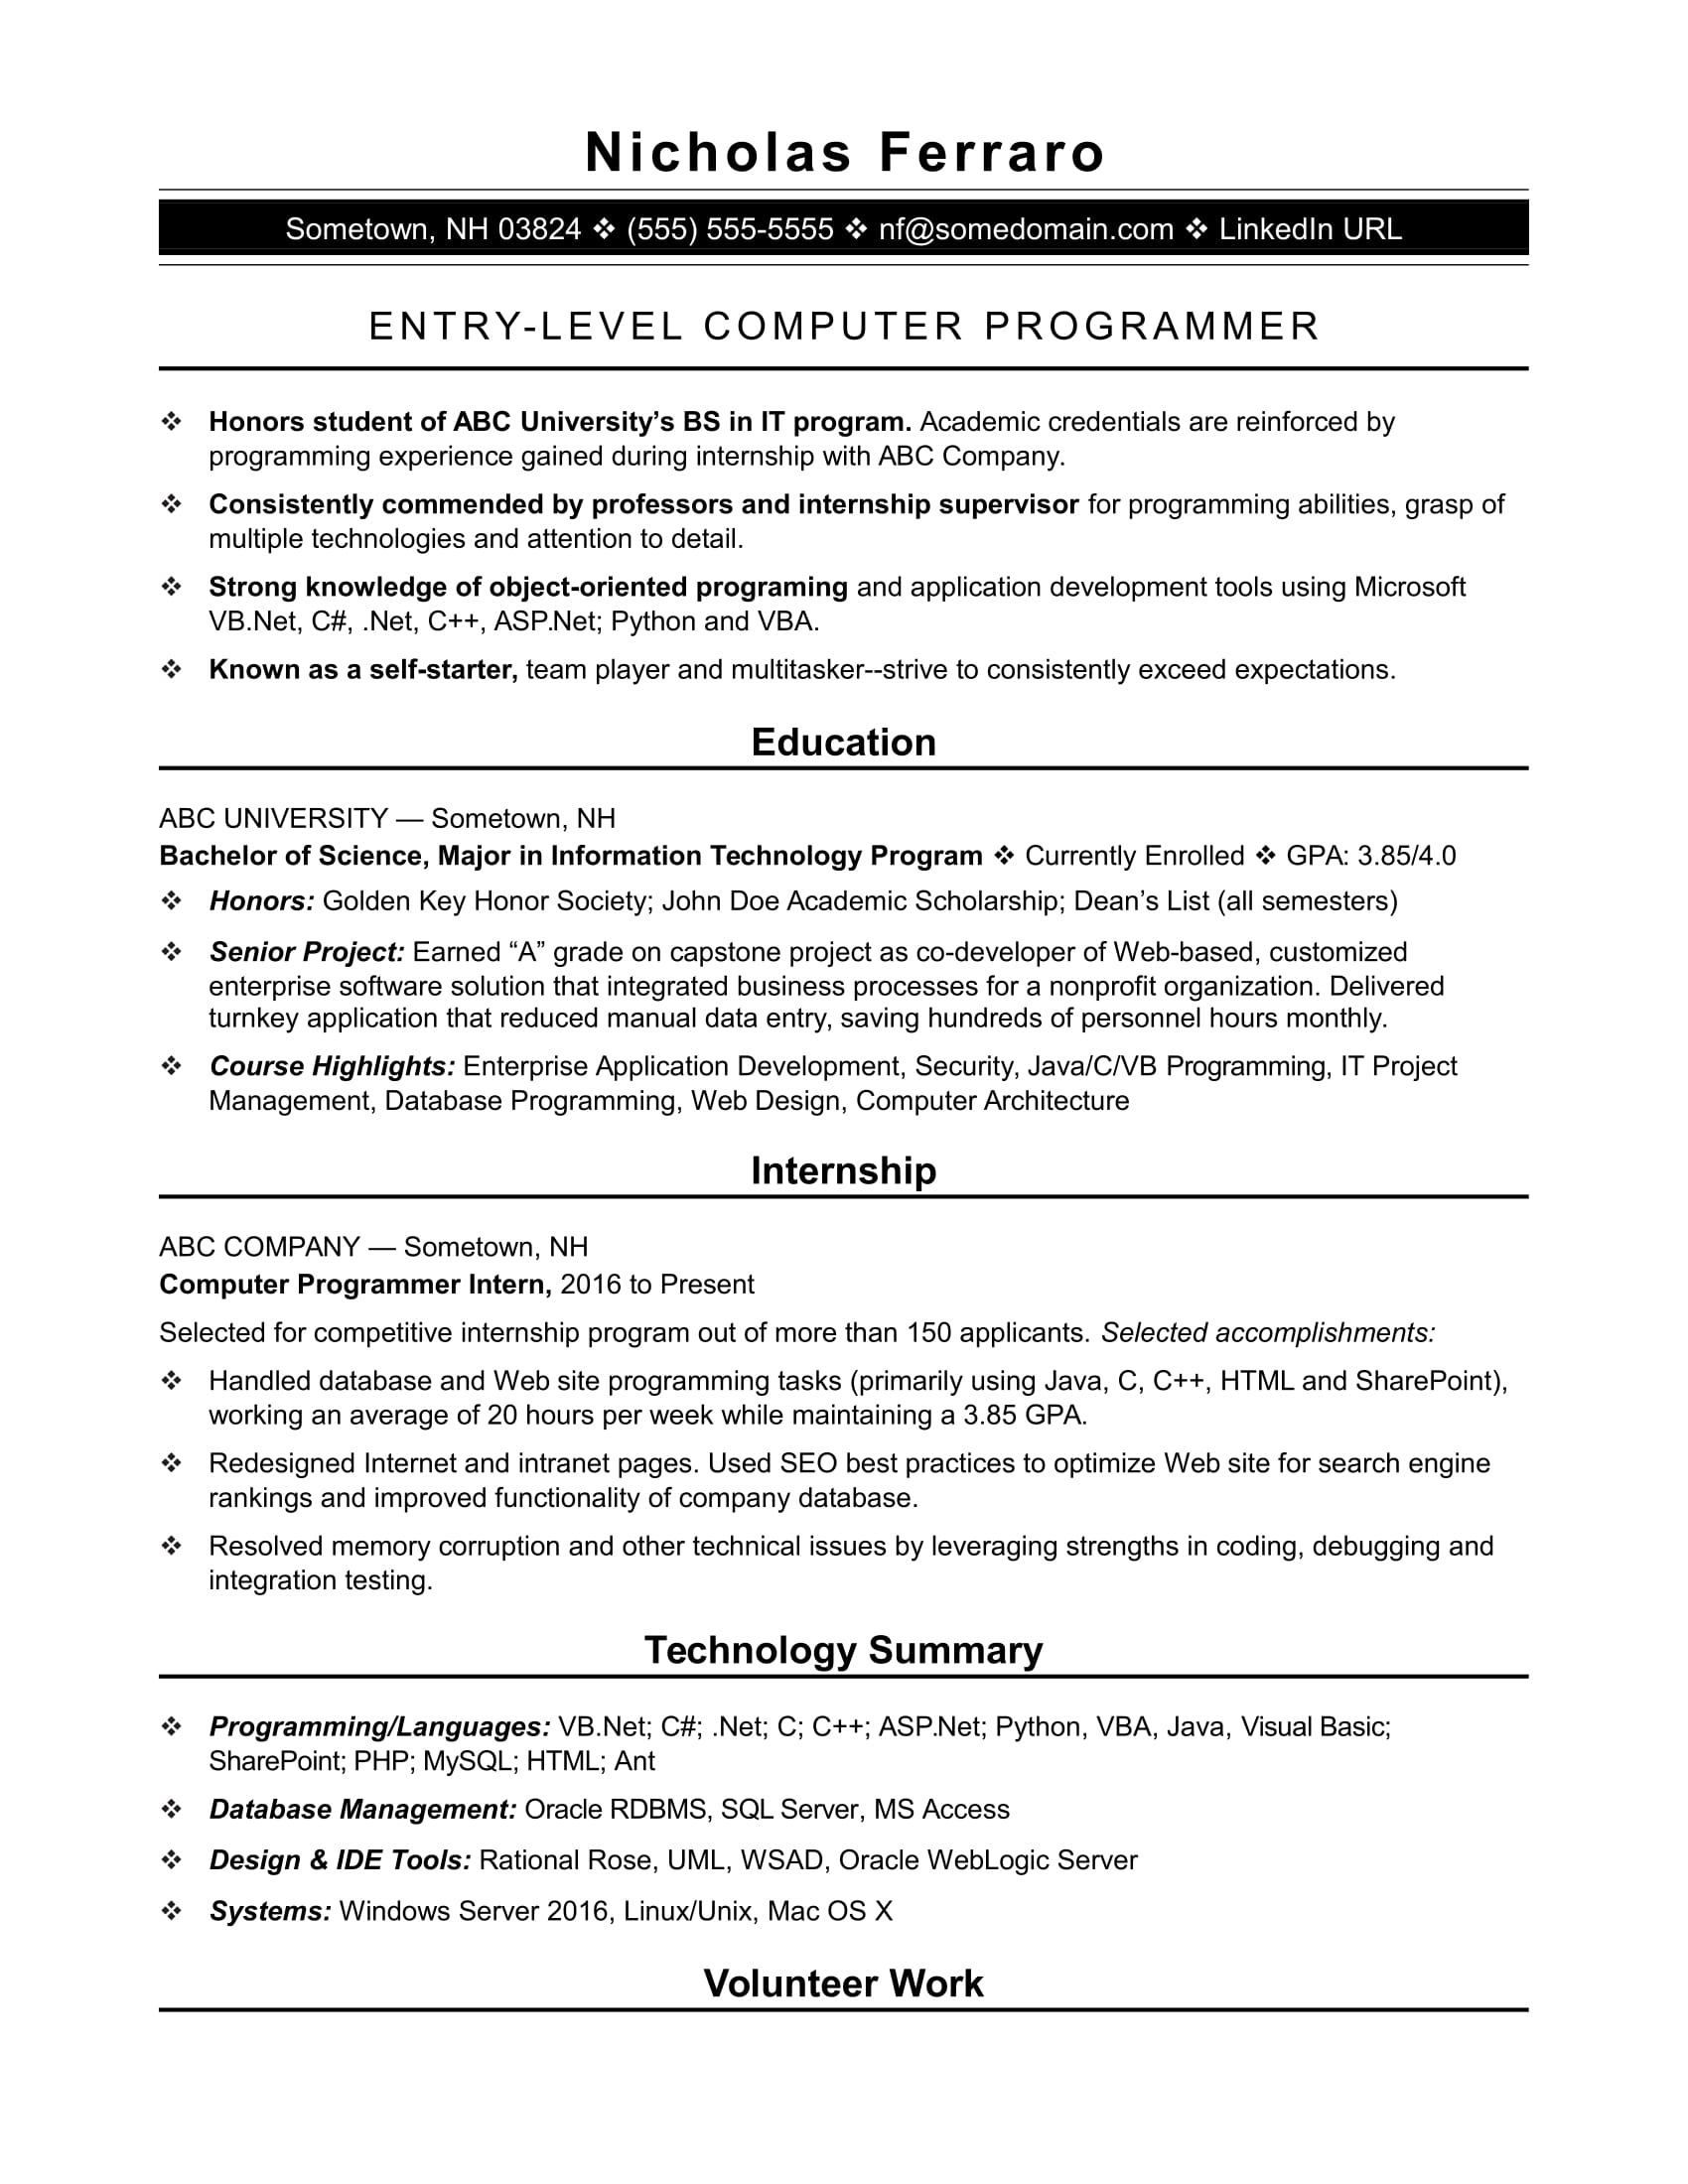 Sample Resume For An Entry Level Computer Programmer Monster